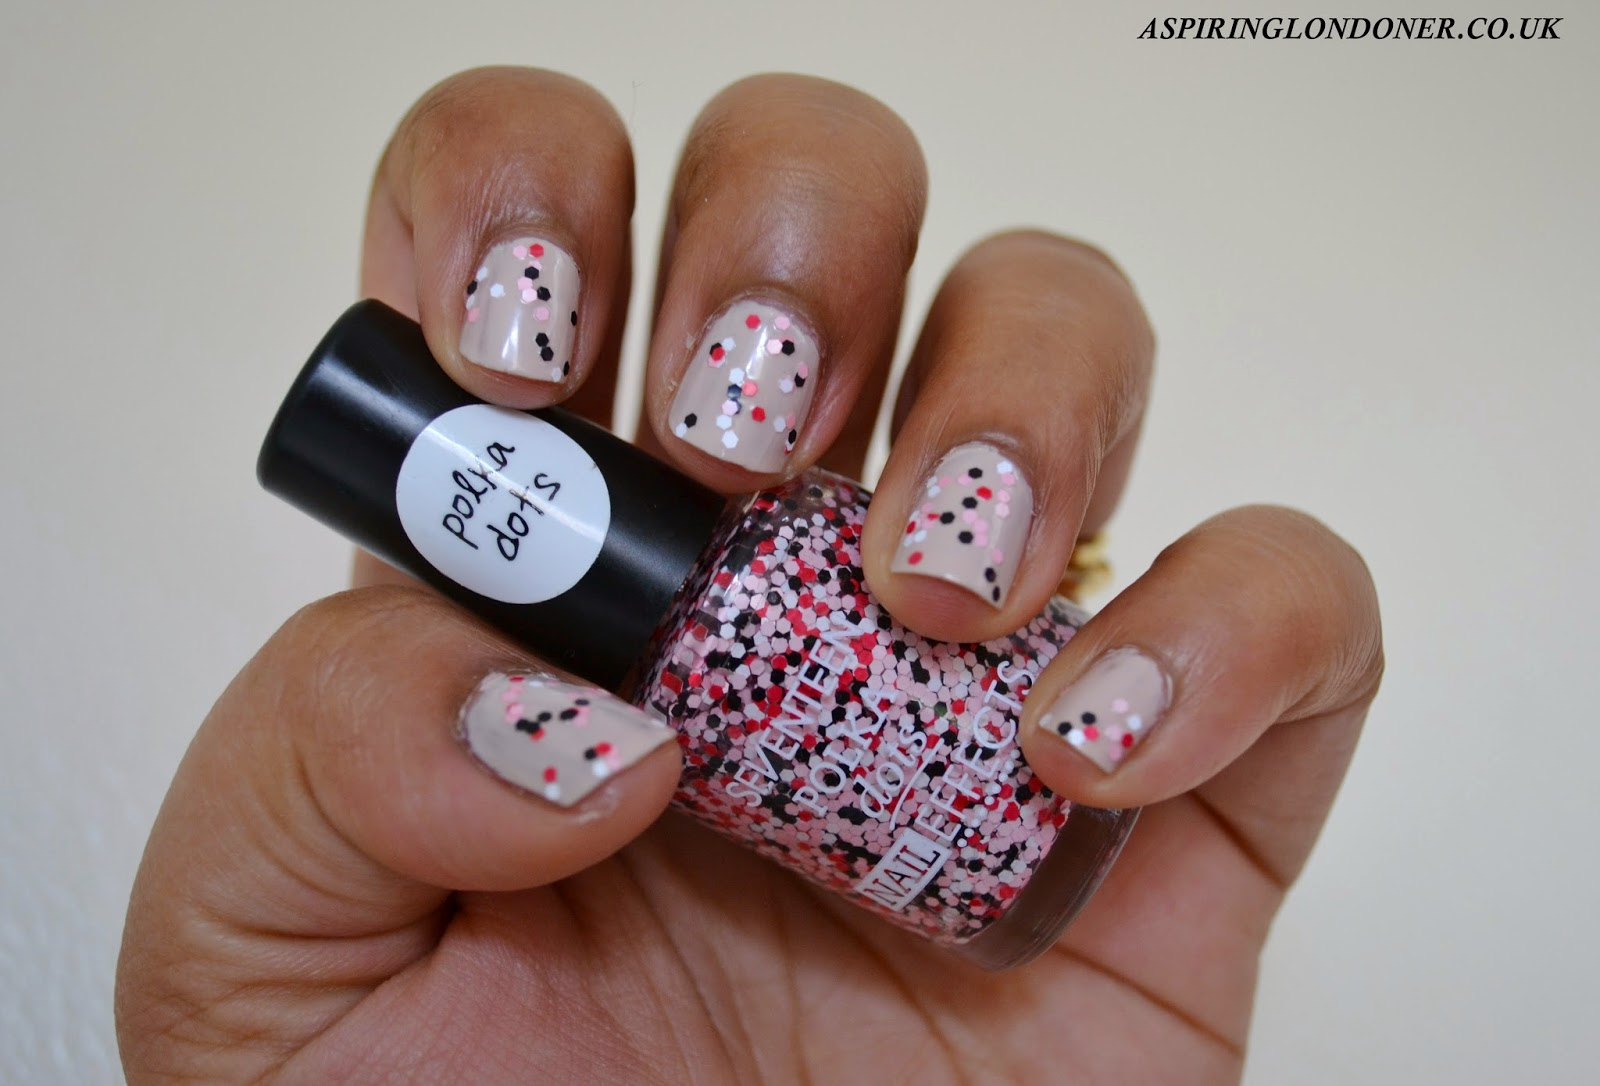 Seventeen Nail Effects Polka Dot Top Coat Limited Edition - Aspiring Londoner